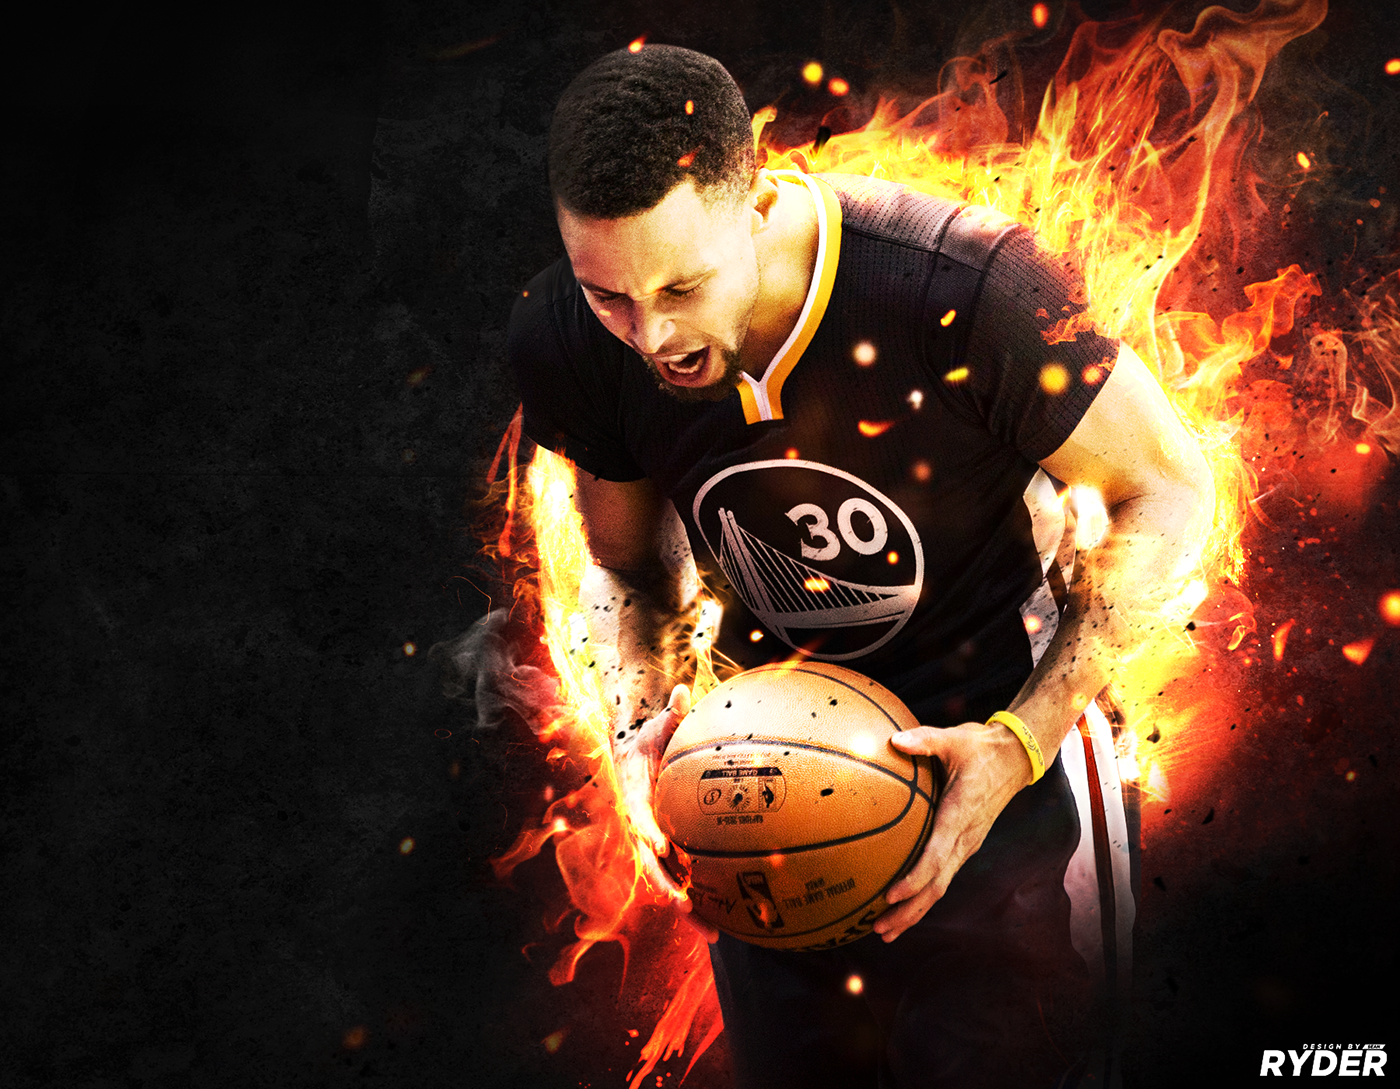 Stephen Curry Playing With Fire On Behance